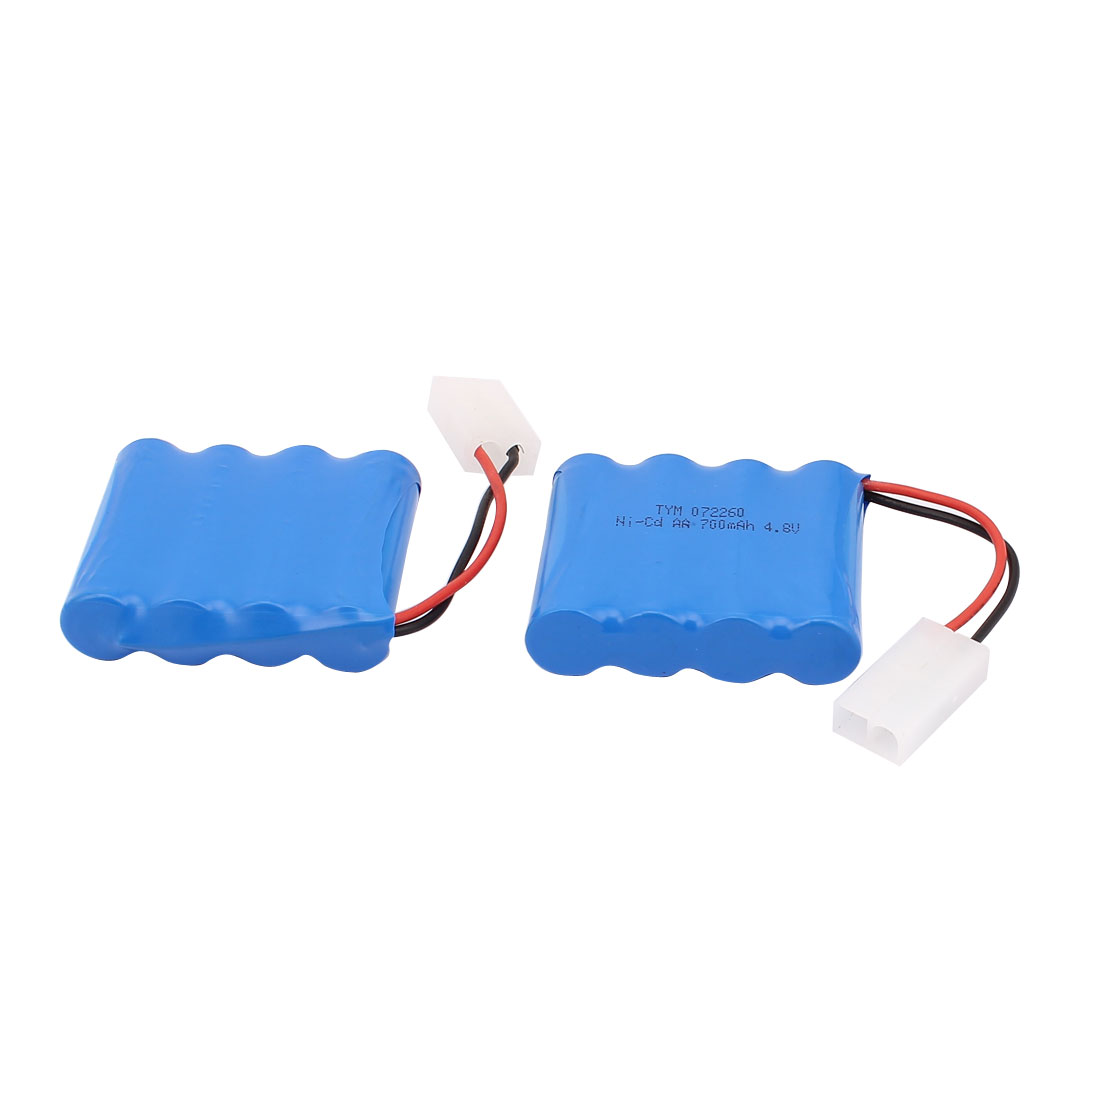 2PCS 4.8V 700mAh 2P Rechargeable Ni-Cd Battery for RC Airplane Car